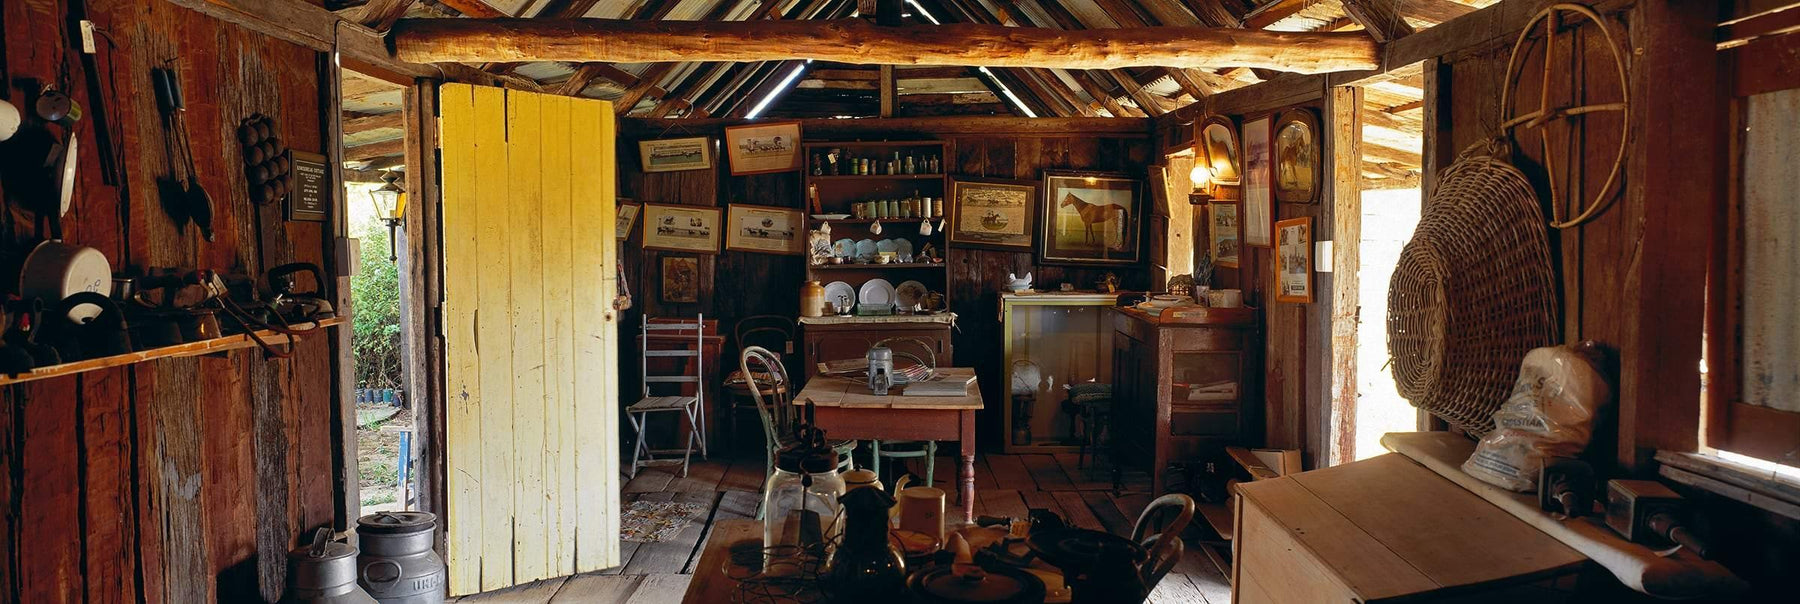 Interior of an old wooden shack filled with framed pictures table and chairs dishes and other miscellaneous items